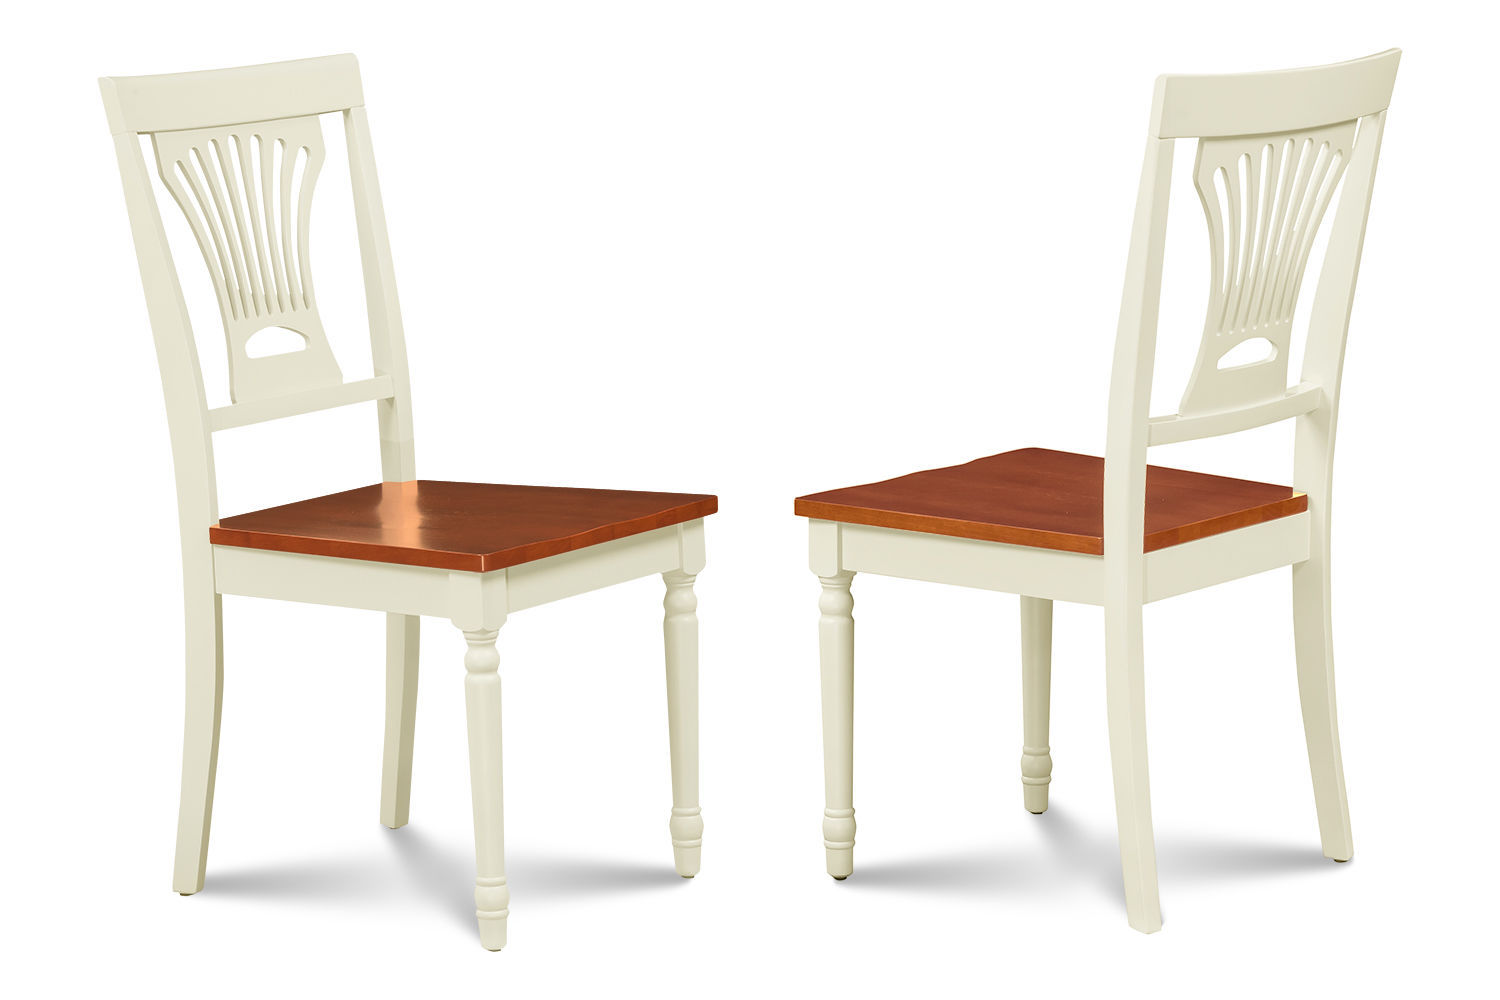 SET OF 2 DINING KITCHEN SIDE CHAIR  WITH WOODEN SEATS  IN BUTTERMILK & CHERRY